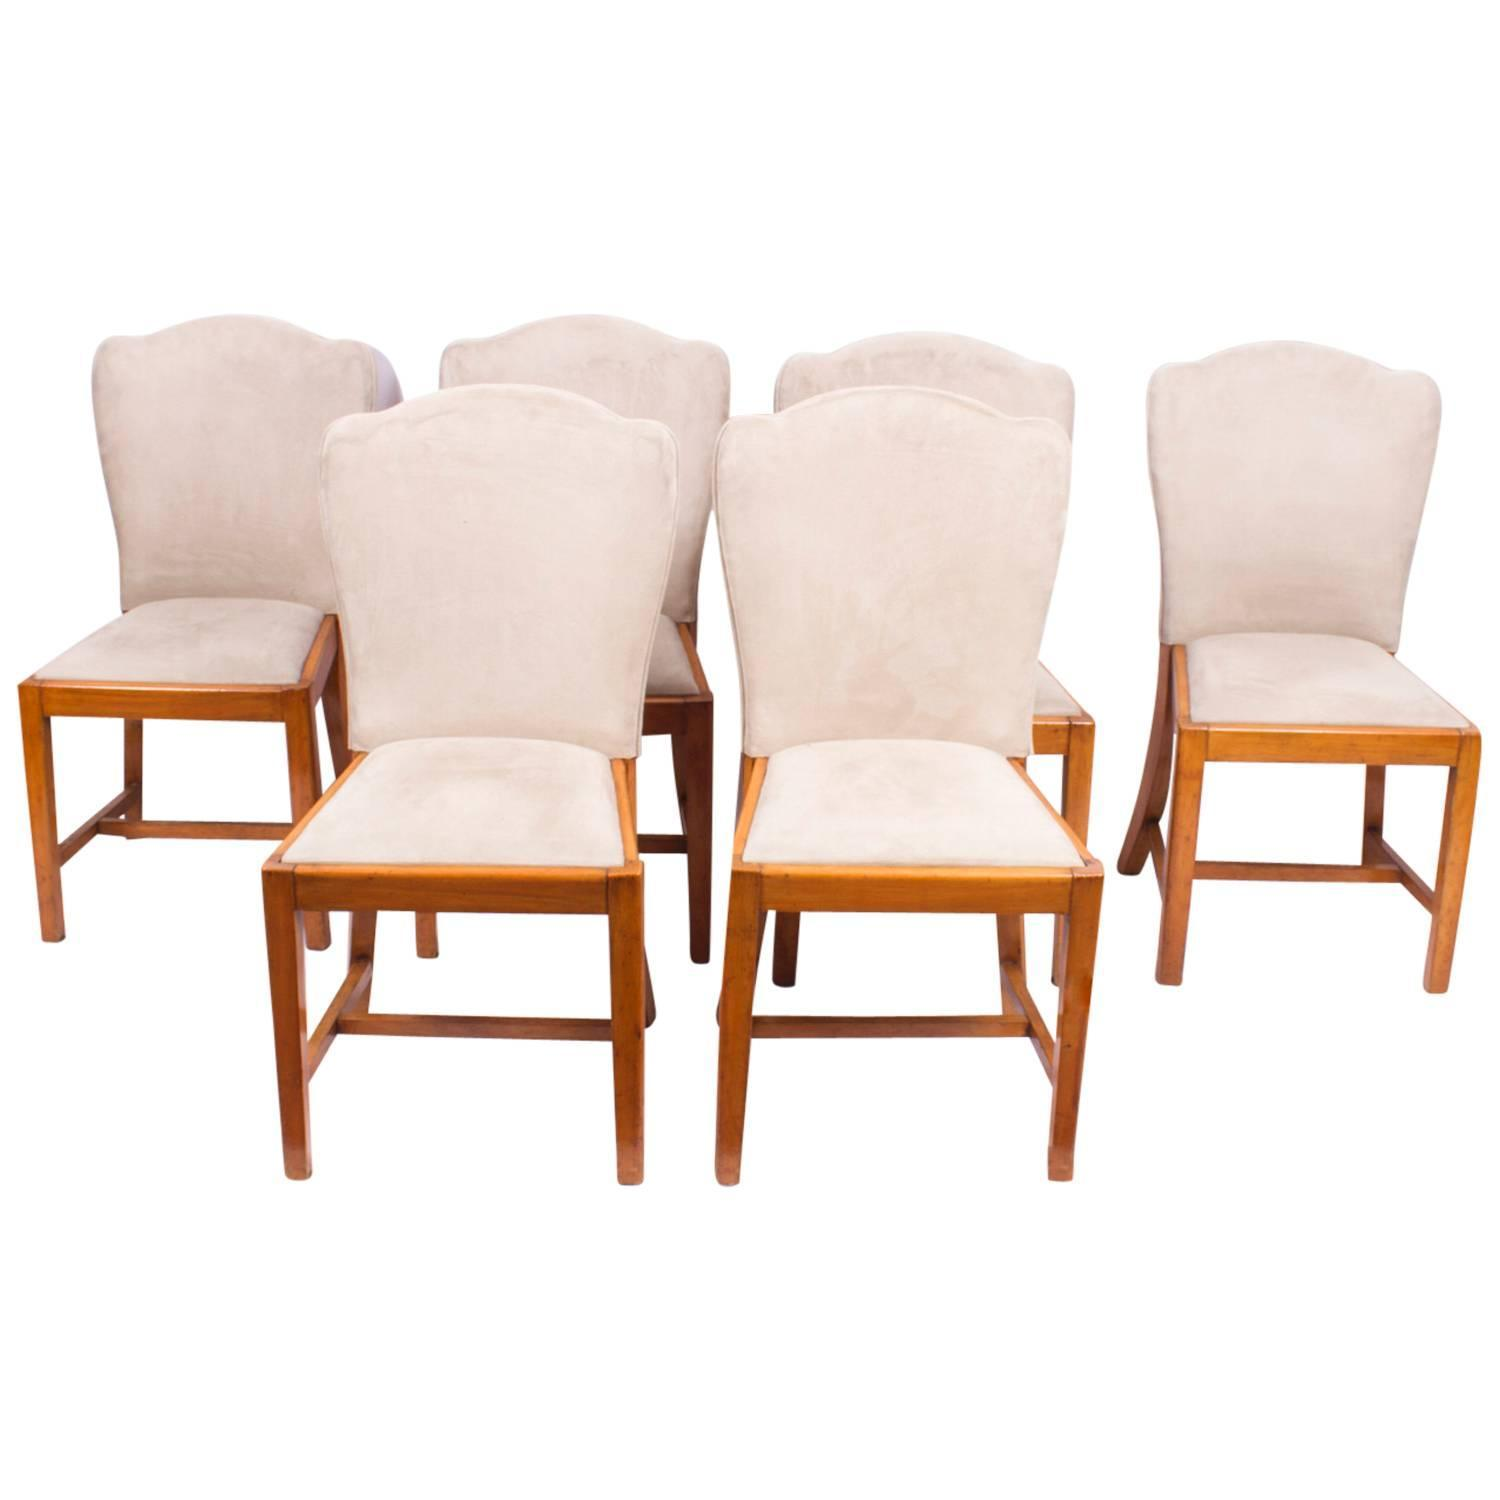 Antique set of six walnut art deco dining chairs epstein circa 1930 for sale at 1stdibs - Epstein art deco furniture ...